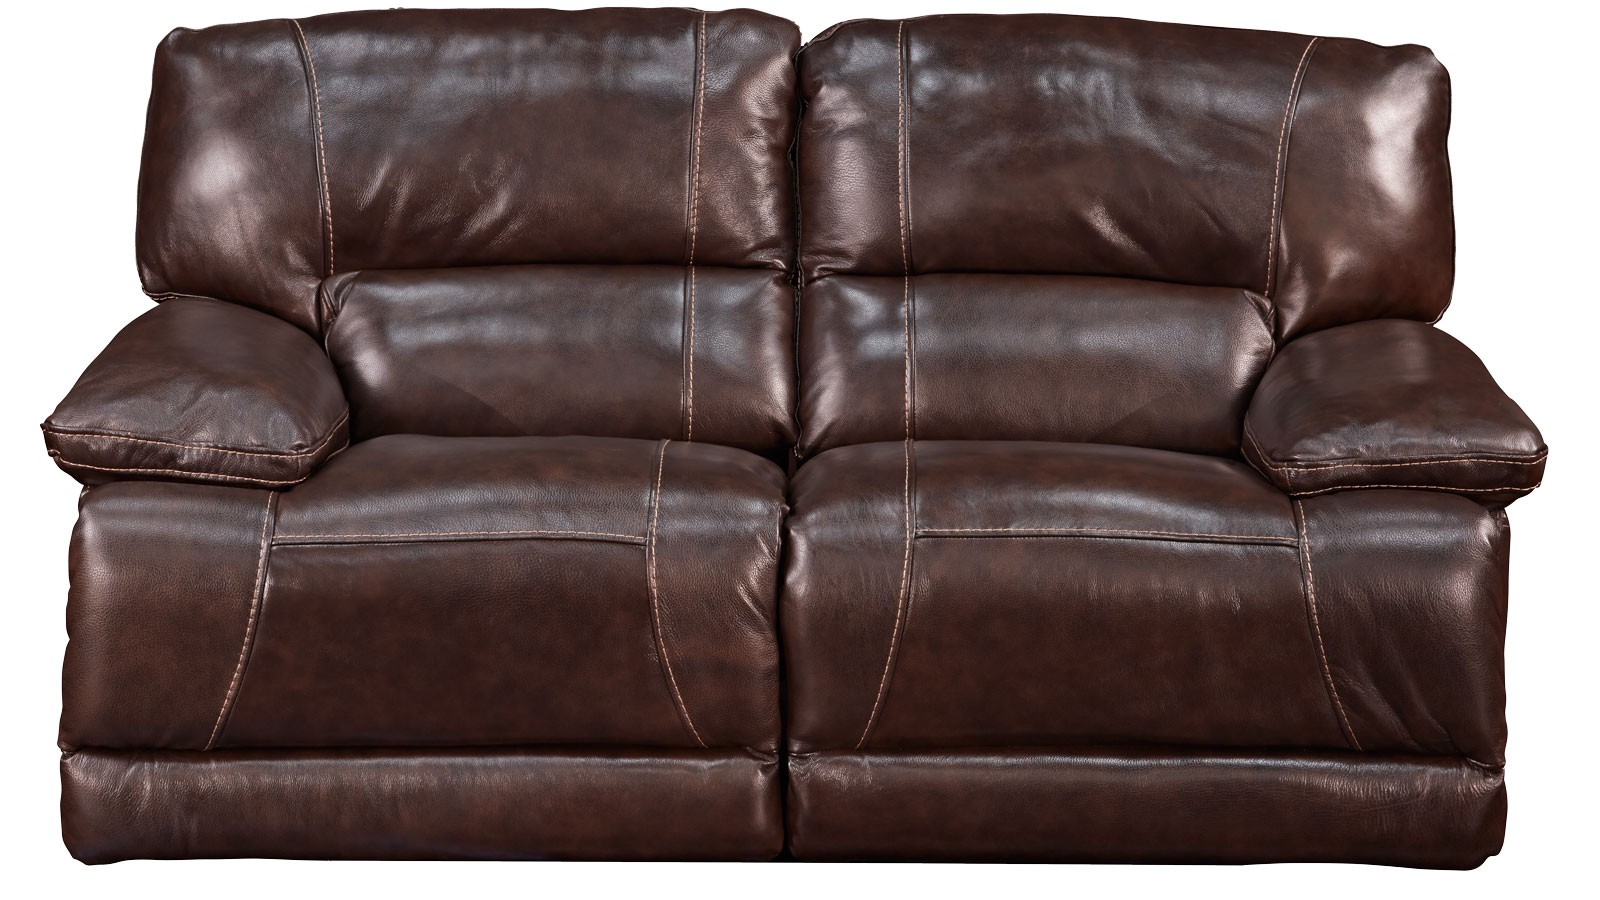 electric reclining loveseat power reclining loveseats fleet street power reclining loveseat front view  uicscvz EFXRMVH